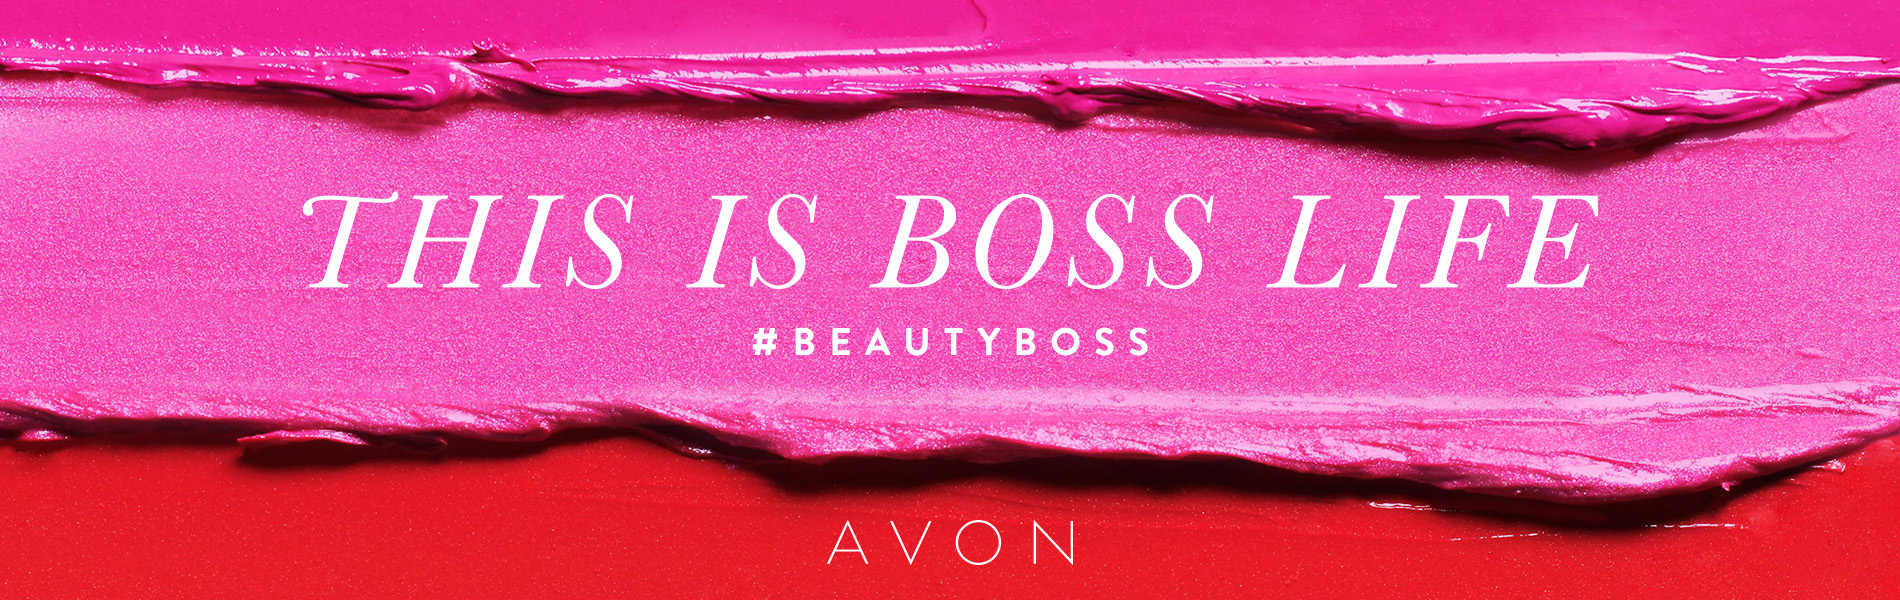 Join Avon and Become a Beauty Boss! - Shirl's Glitz & Glam